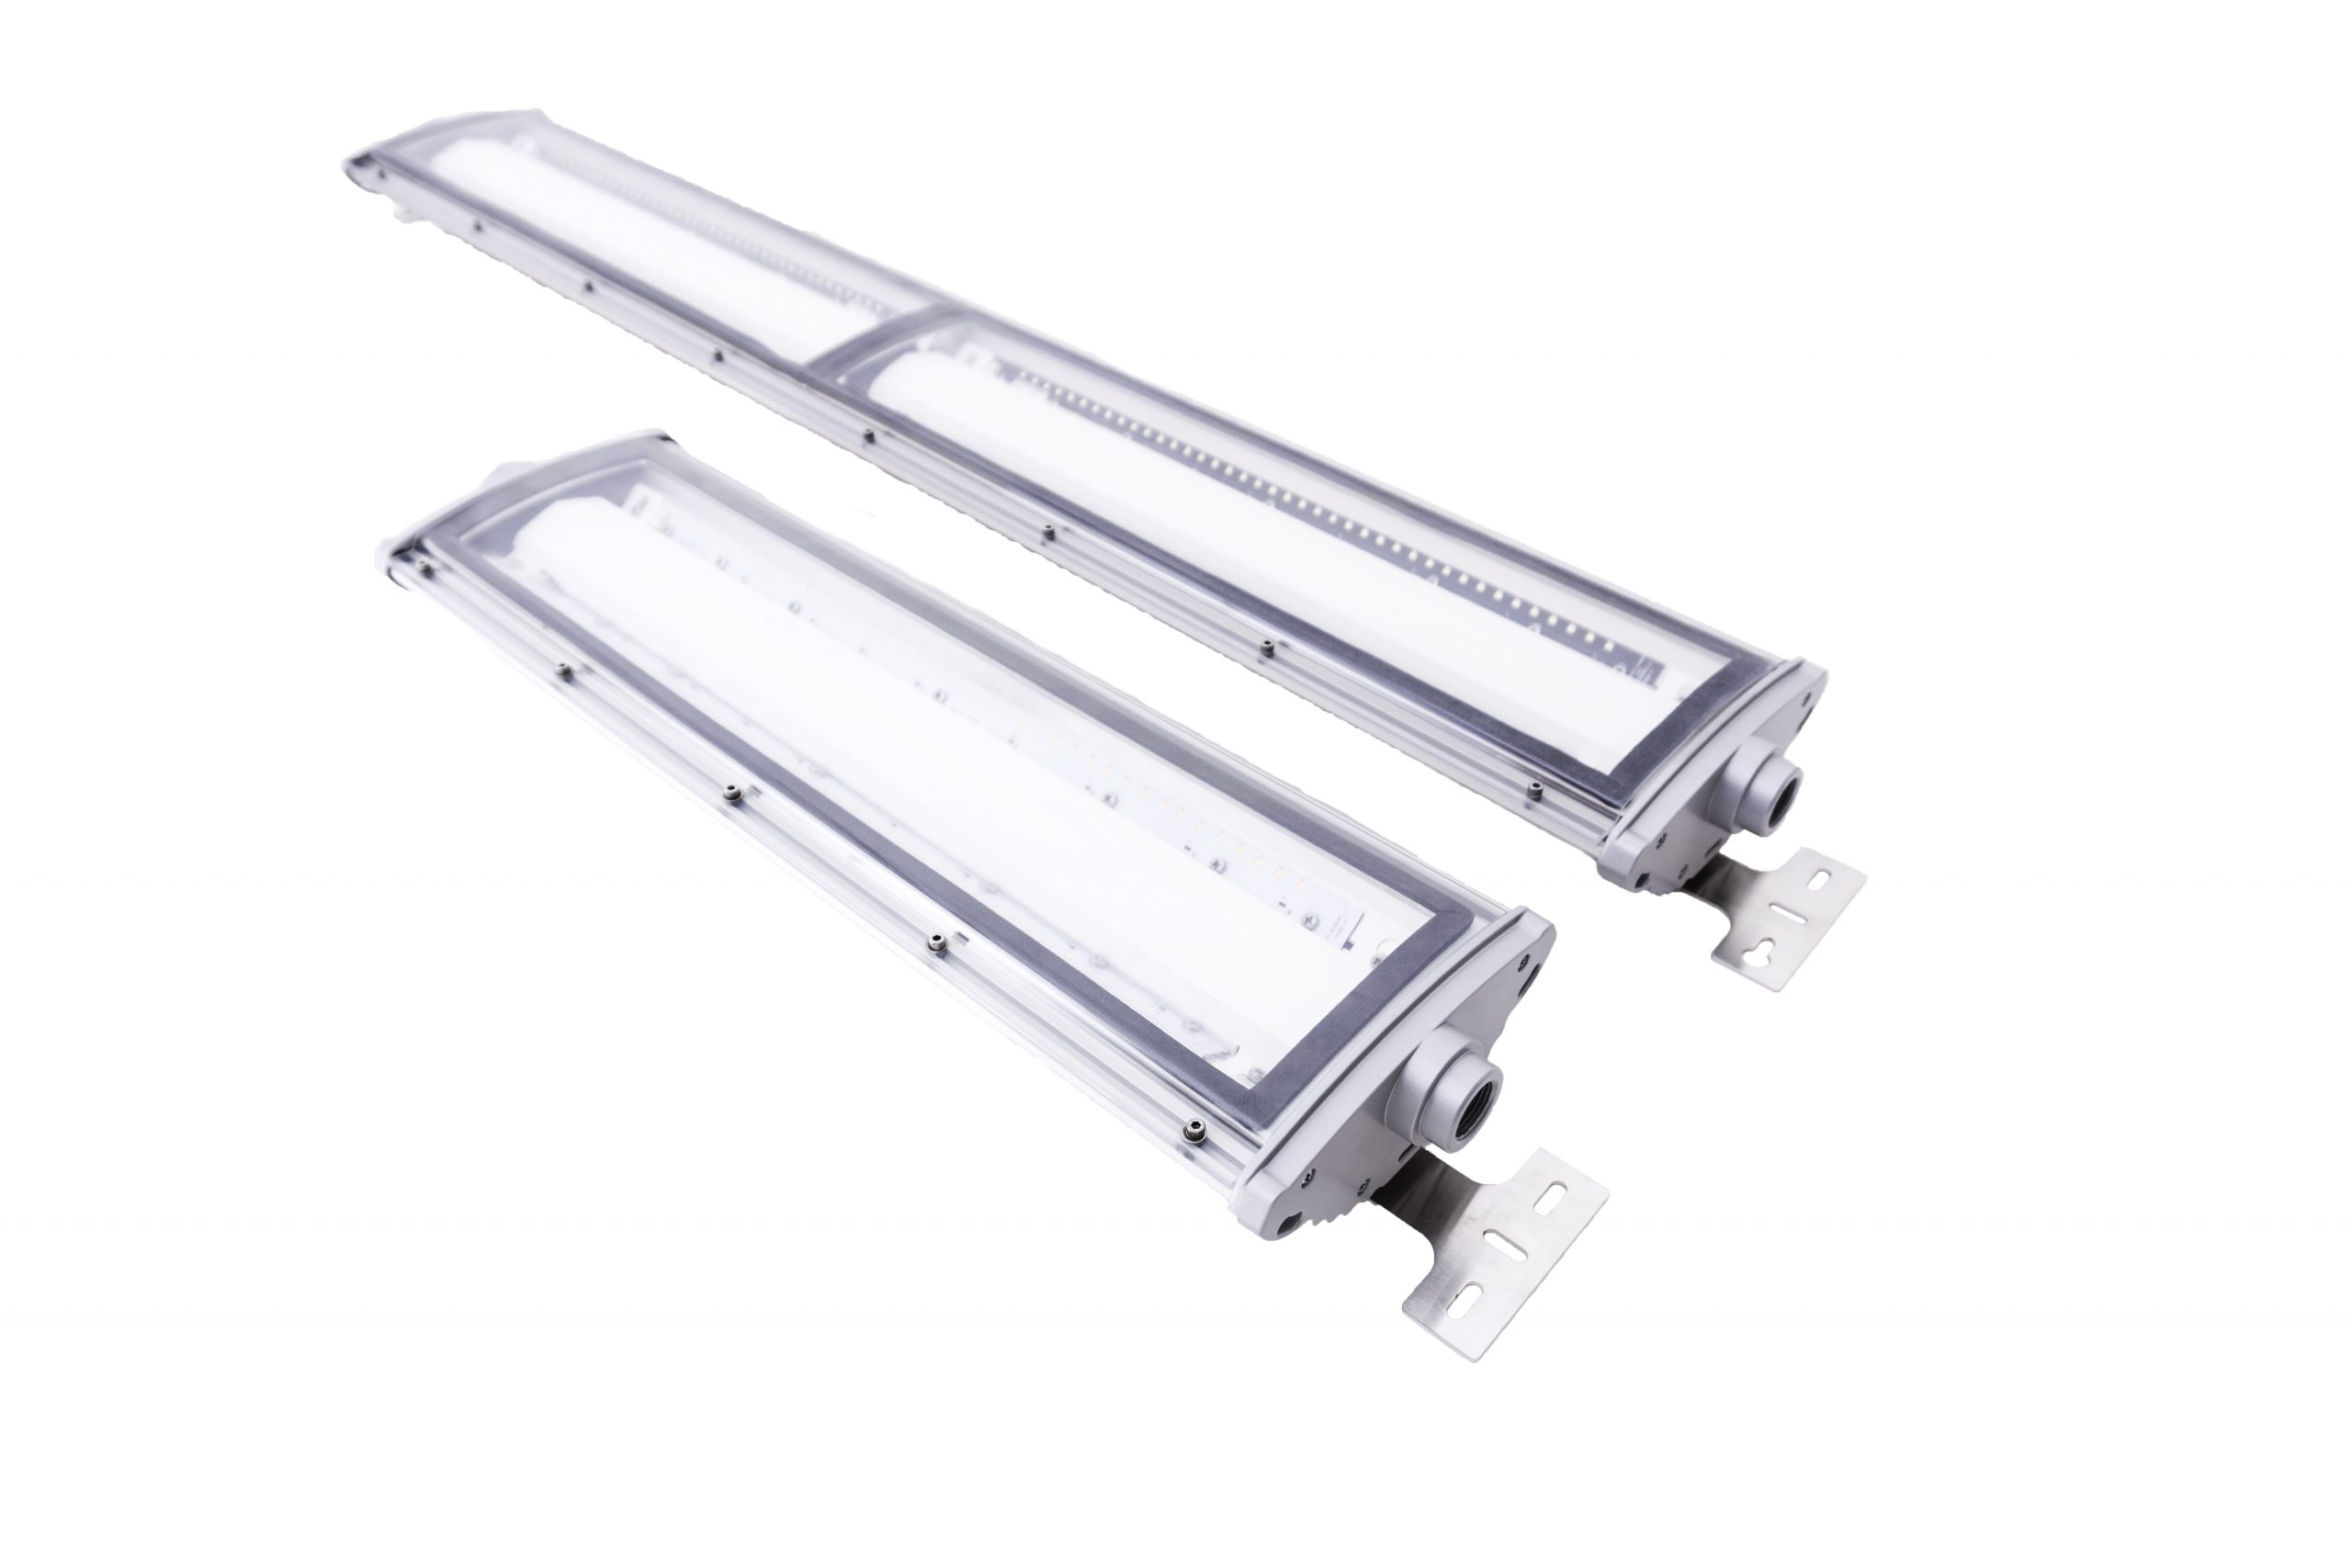 2 and 4 foot models of Nemalux NL series linear industrial LED luminaire, IP66, marine and hazardous location class I div 2 (c1d2) approved and replacement for linear fluorescent light fixtures